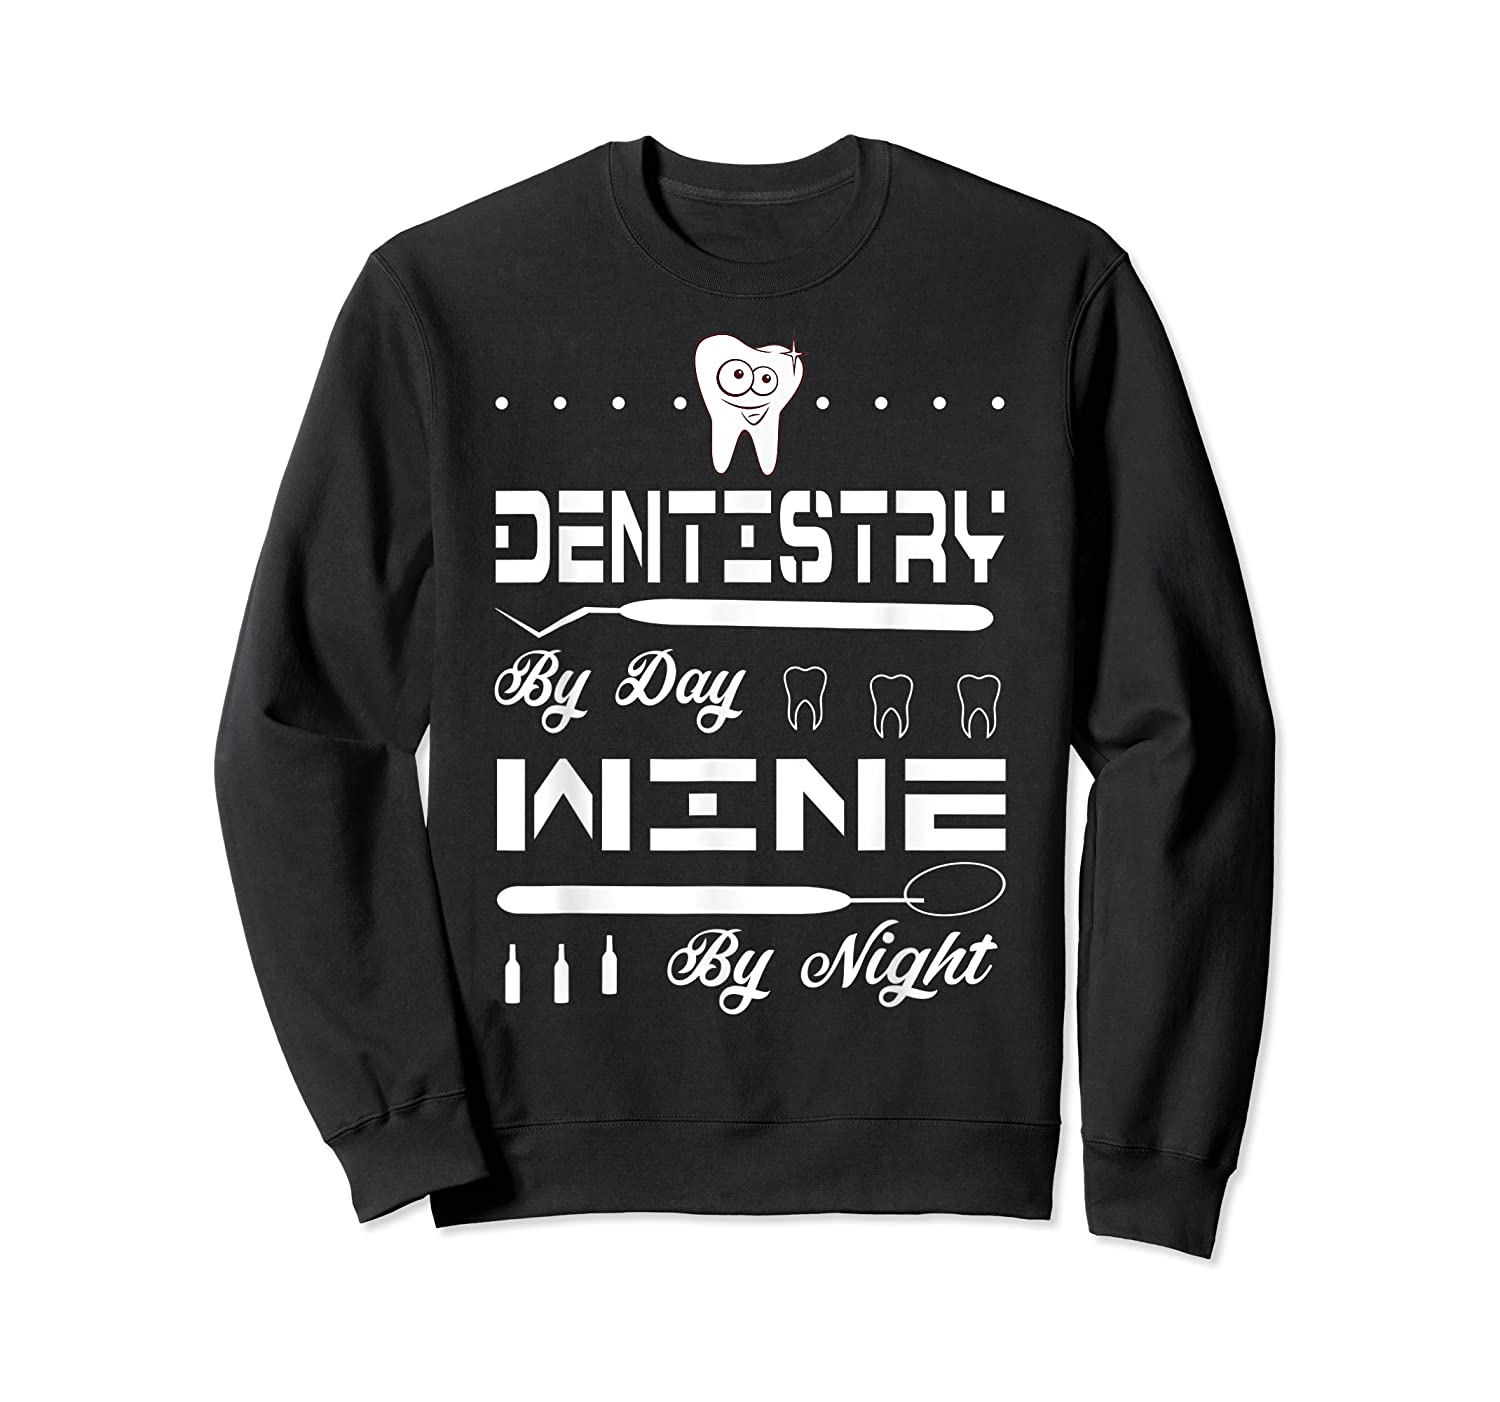 Dentistry By Day Wine By Night Gift Dental Hygienist Shirts Crewneck Sweater